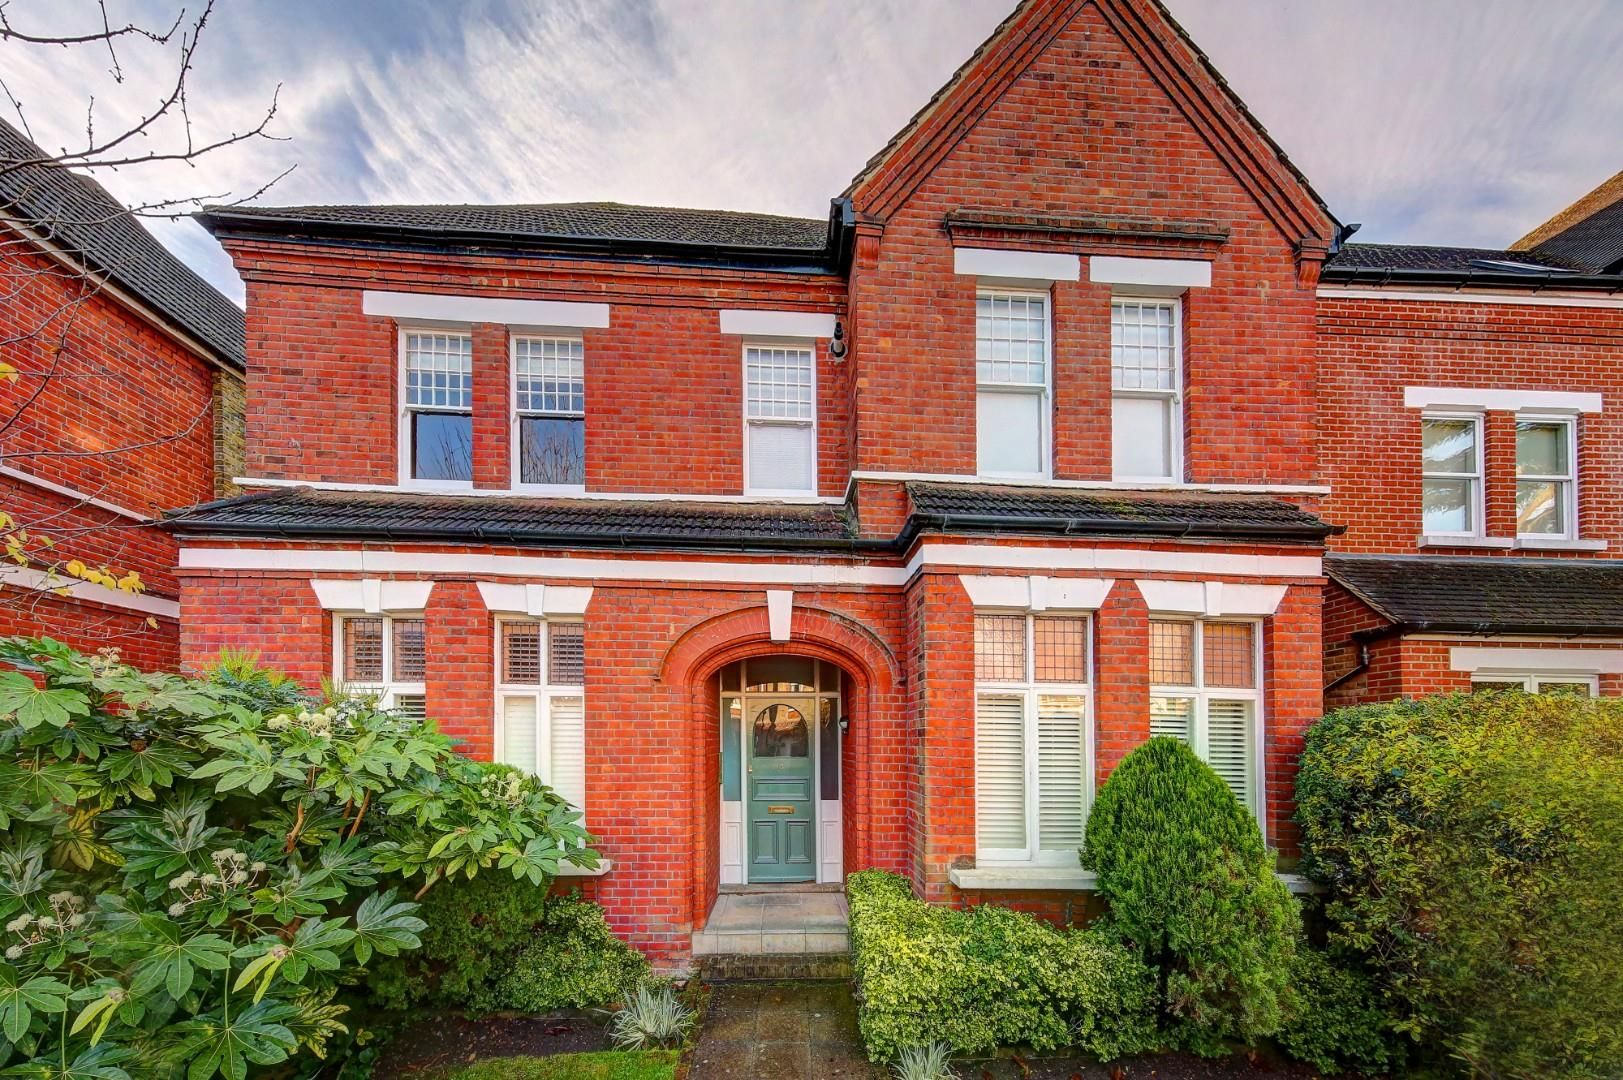 Property photo 1 of 6. 5_45_Vicarage_Road_Front_12307_4.Jpg